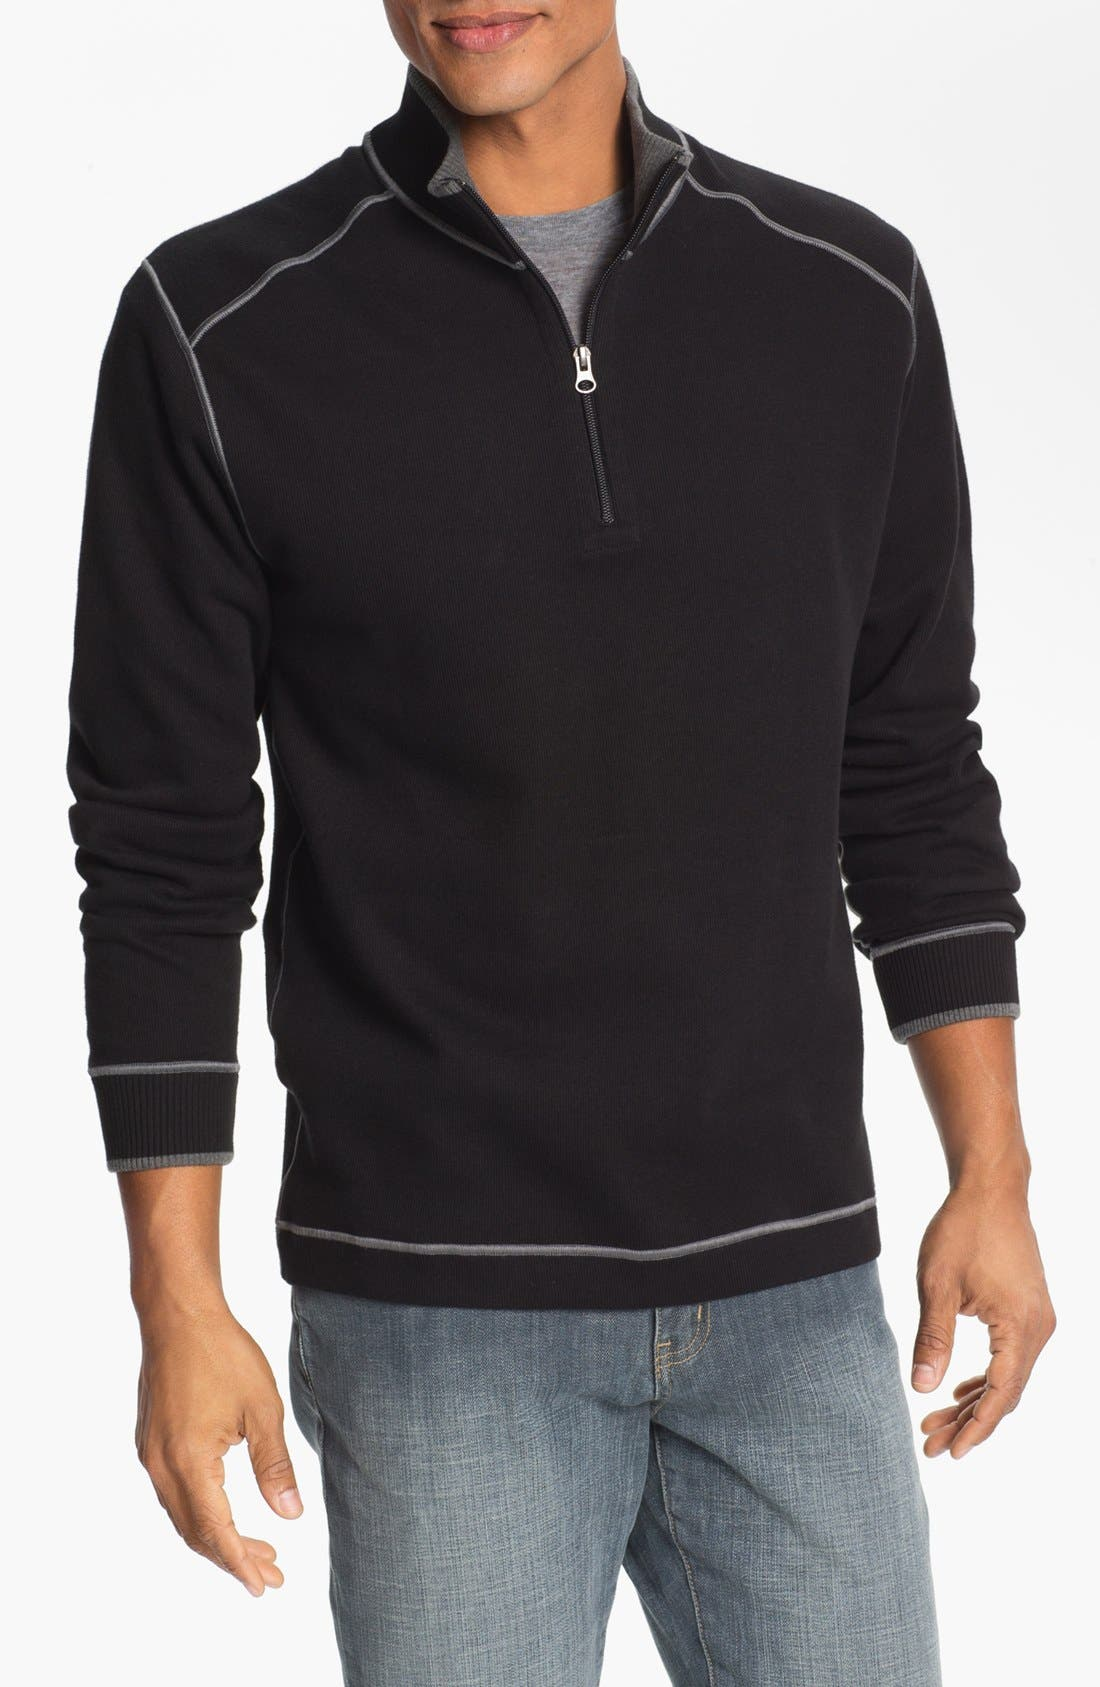 Alternate Image 1 Selected - Cutter & Buck Regular Fit Quarter Zip Sweater (Regular & Big)